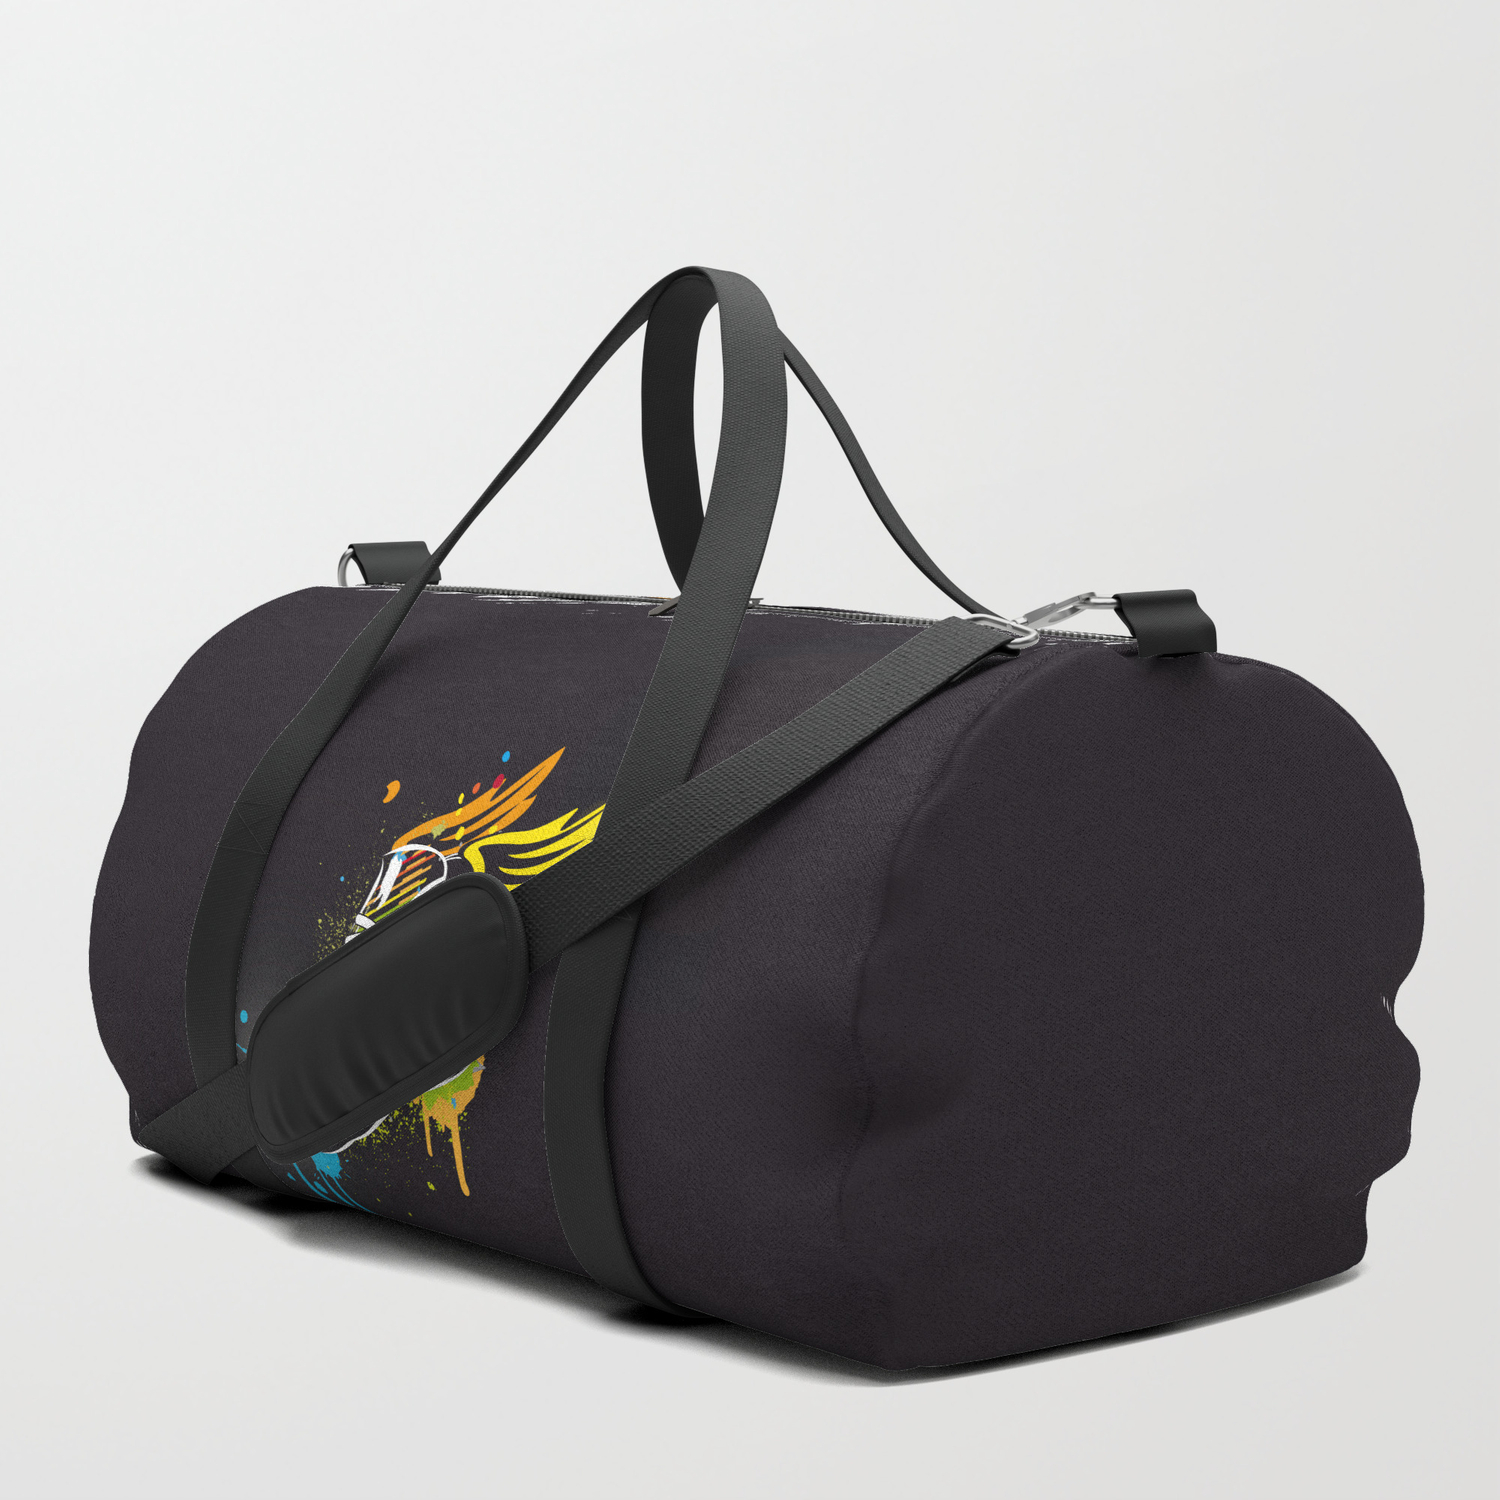 cc0a4d5859be cool sneaker graffiti with wings Duffle Bag by namosh